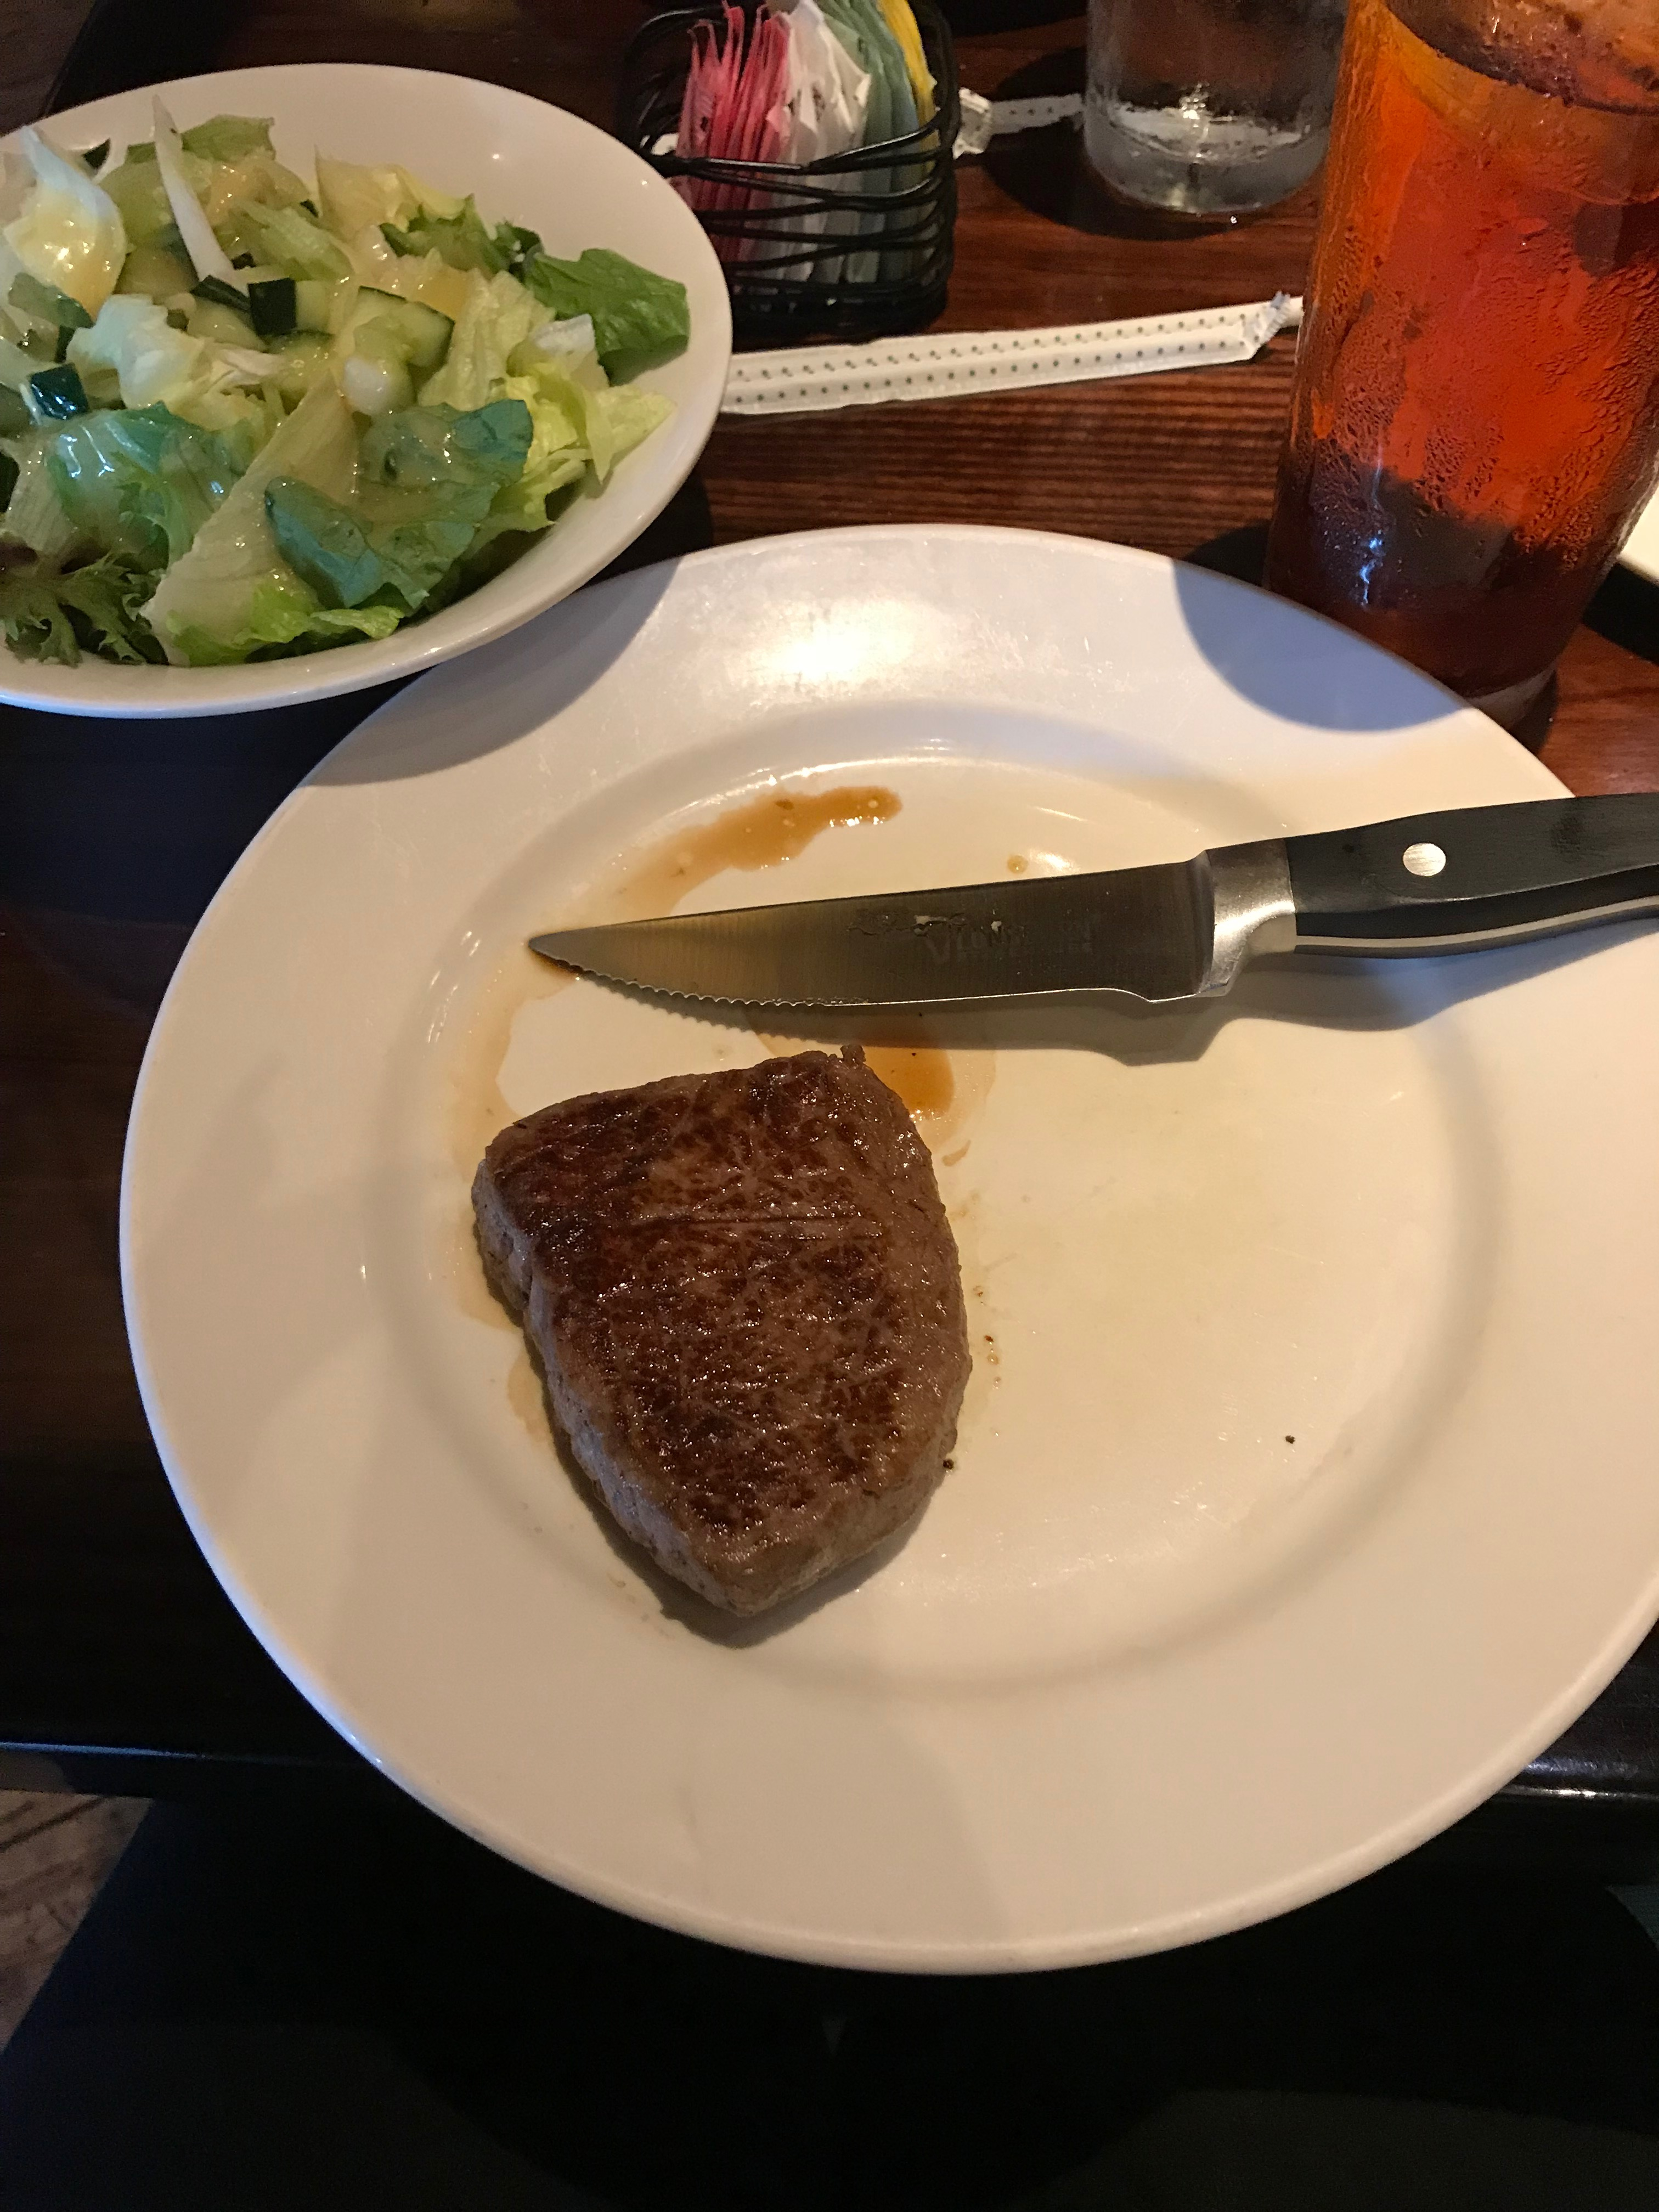 6 oz Sirloin steak